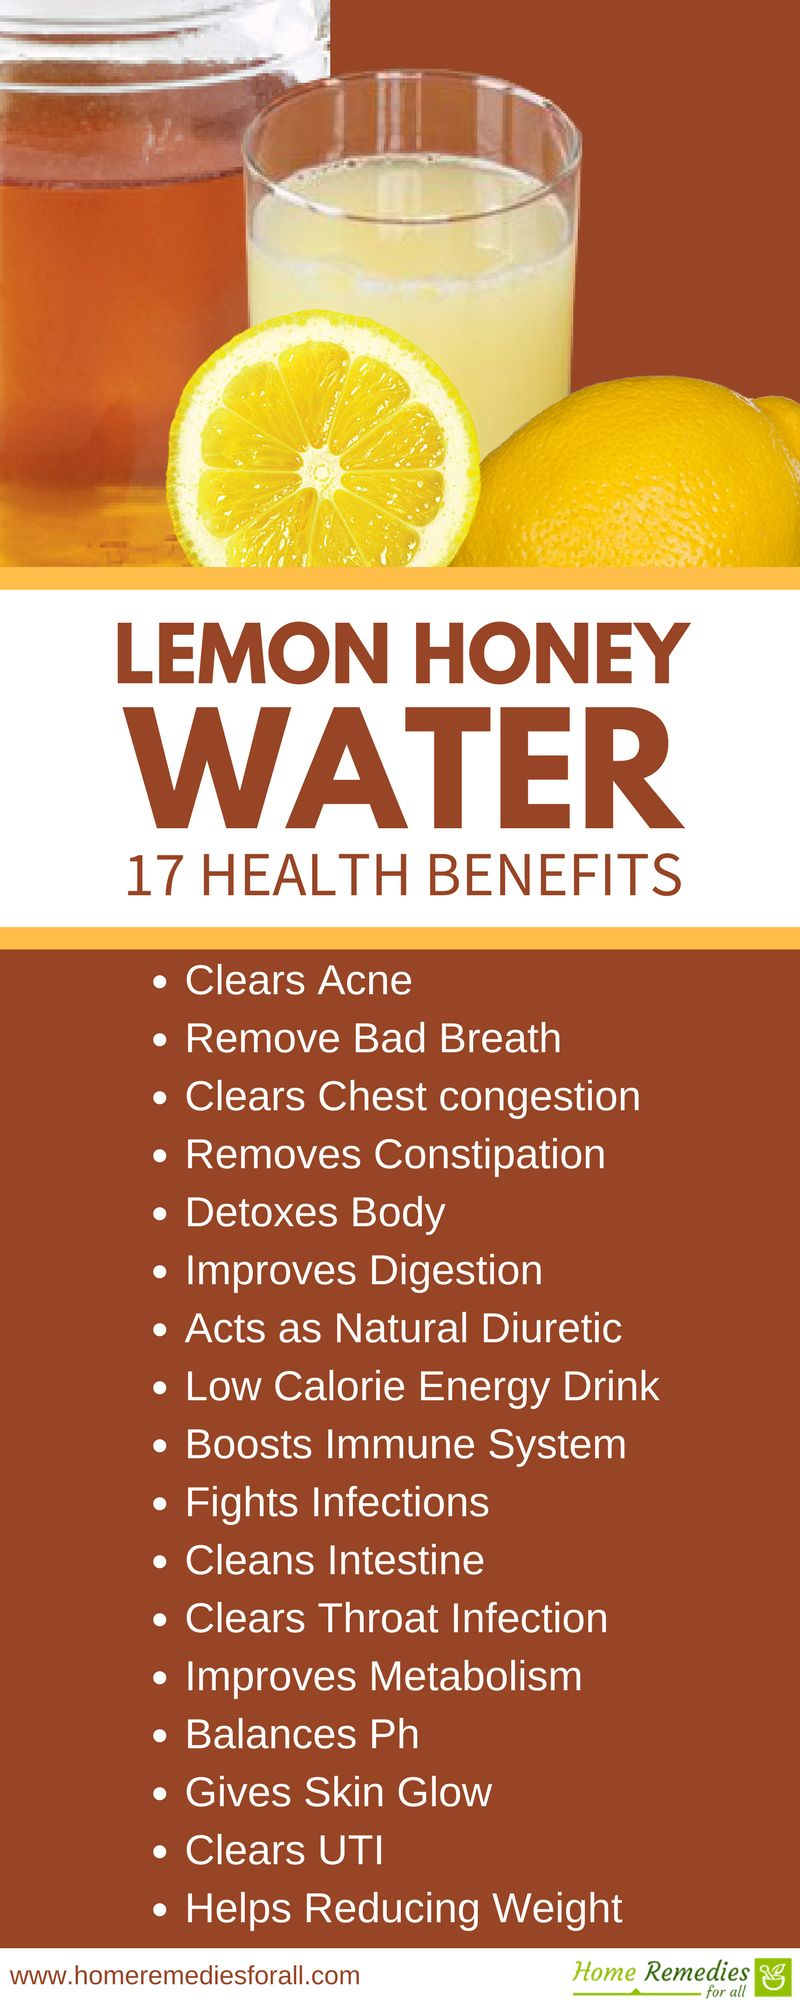 lemon honey water will not only make you feel energetic but